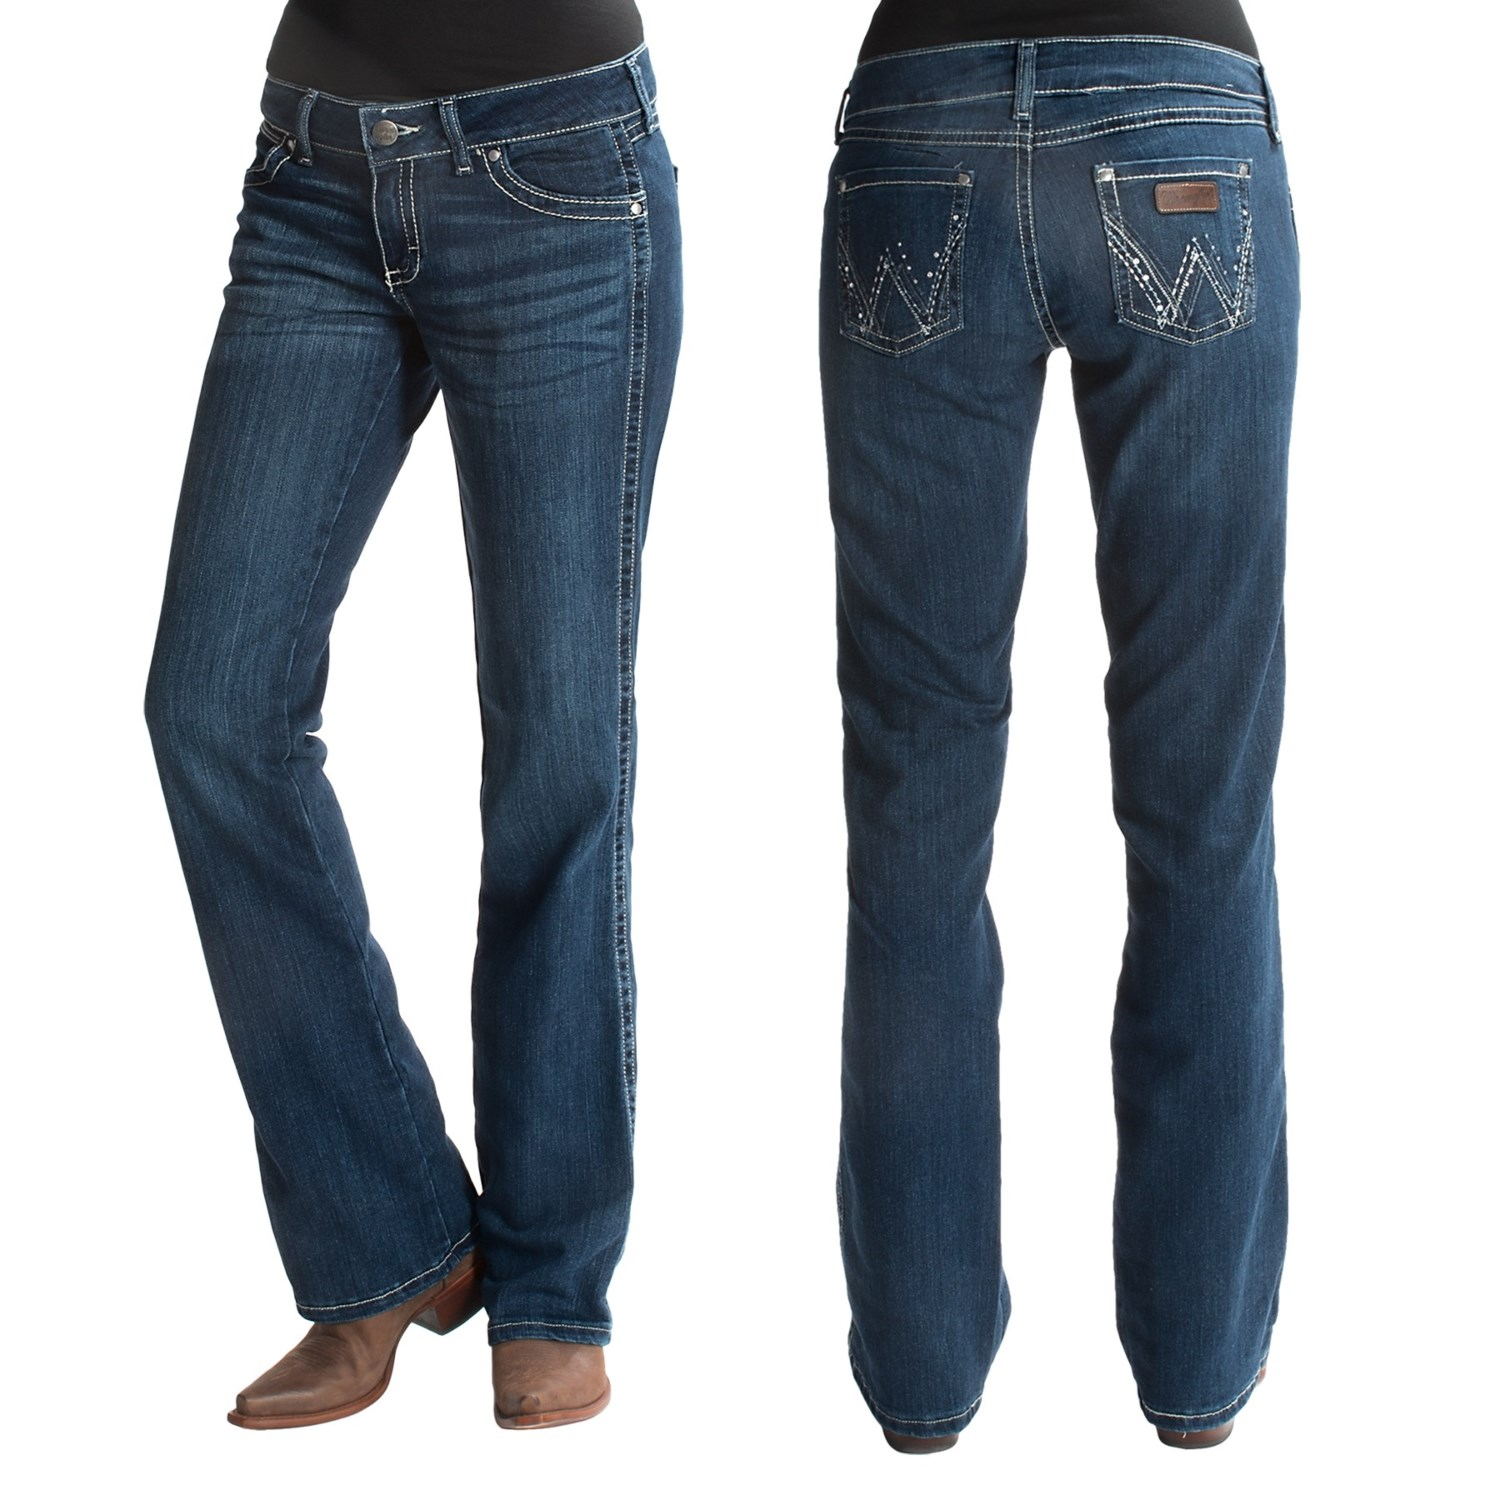 Low Cut Jeans For Women